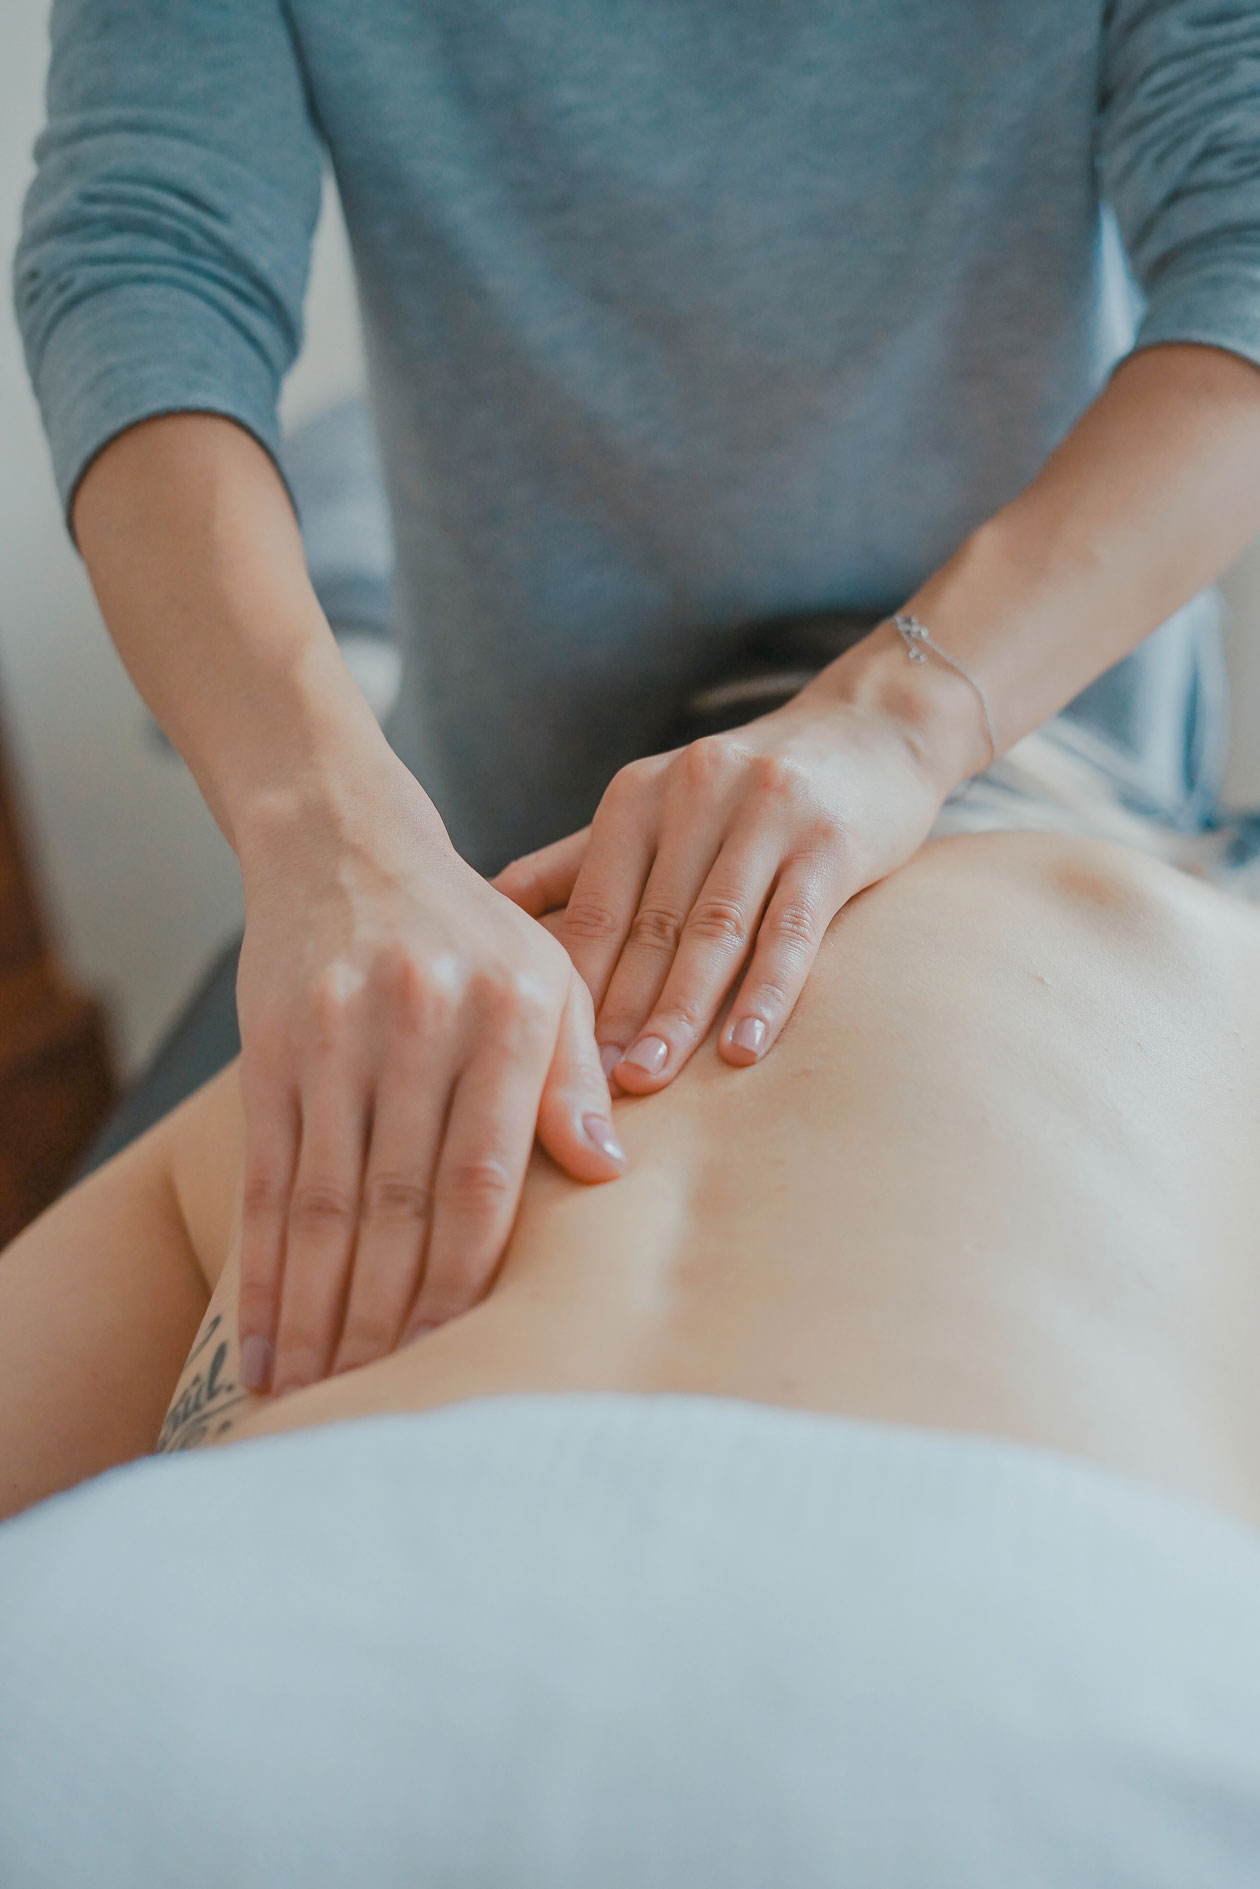 massage therapy - Camelback Medical Centers can treat your pain with our expert massage therapy. Contact one of our locations in Phoenix, Scottsdale, or Naperville, IL.